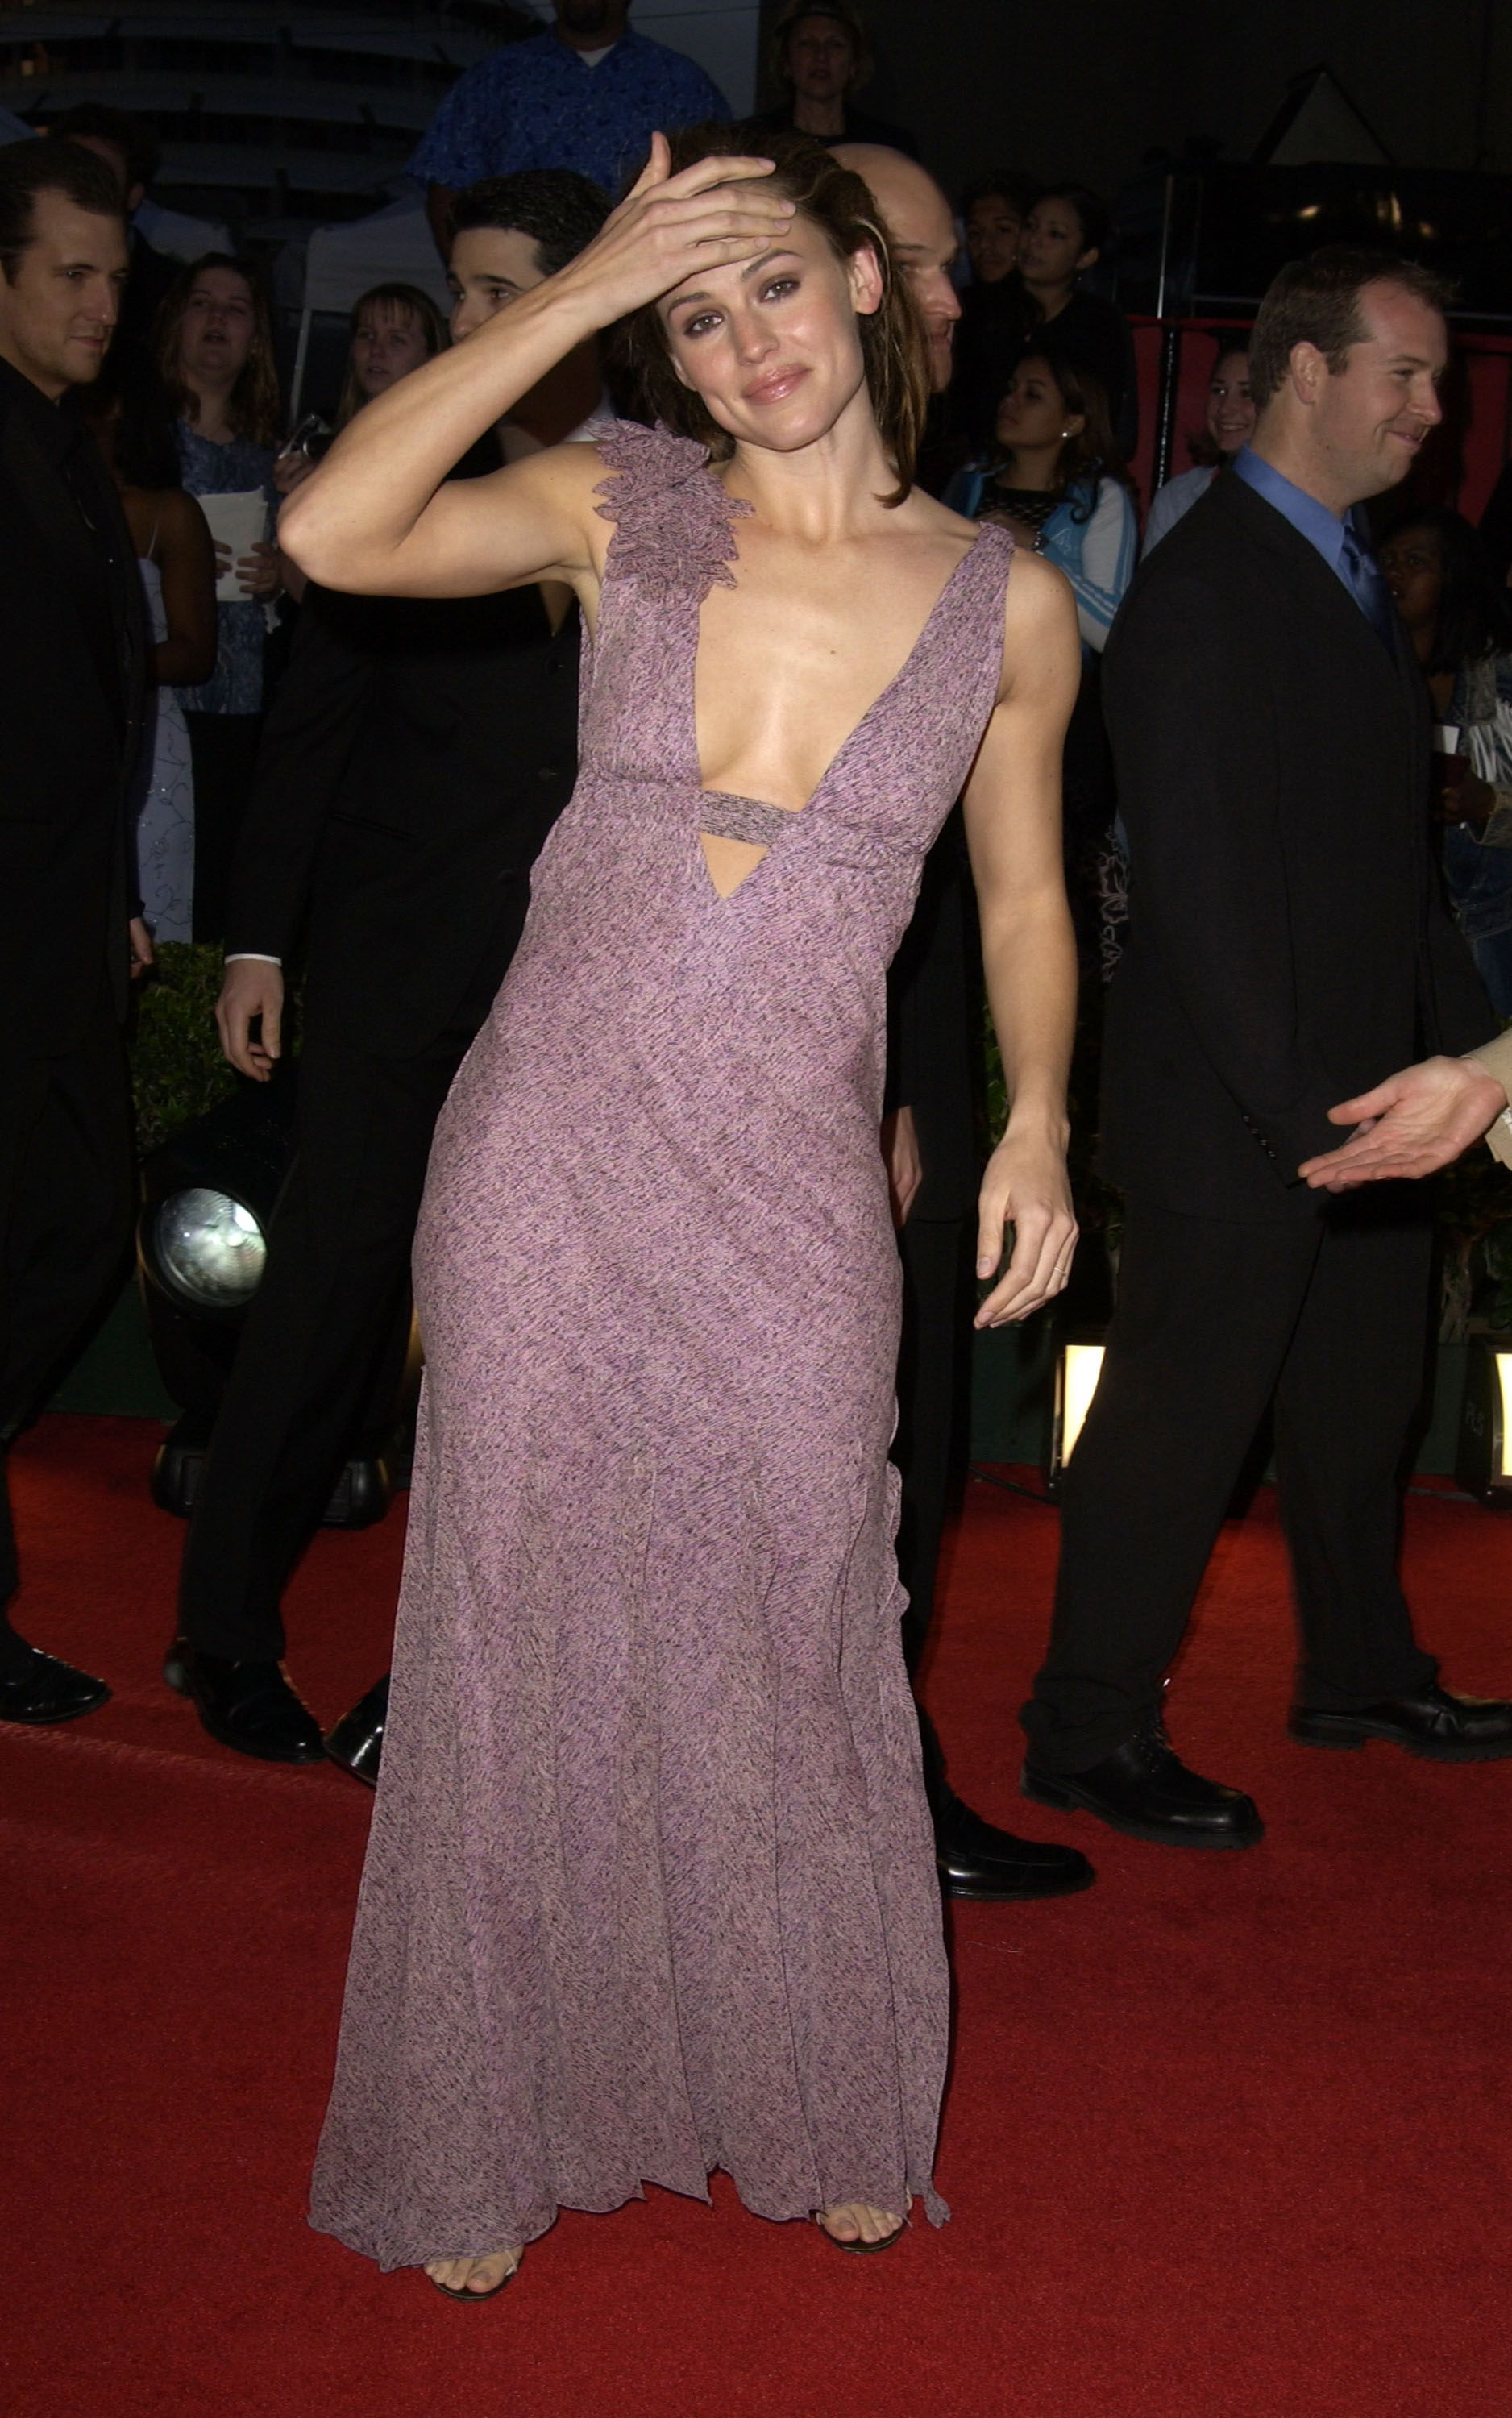 March 16, 2003 In a lilac dress at ABC's 50th Anniversary Celebration.